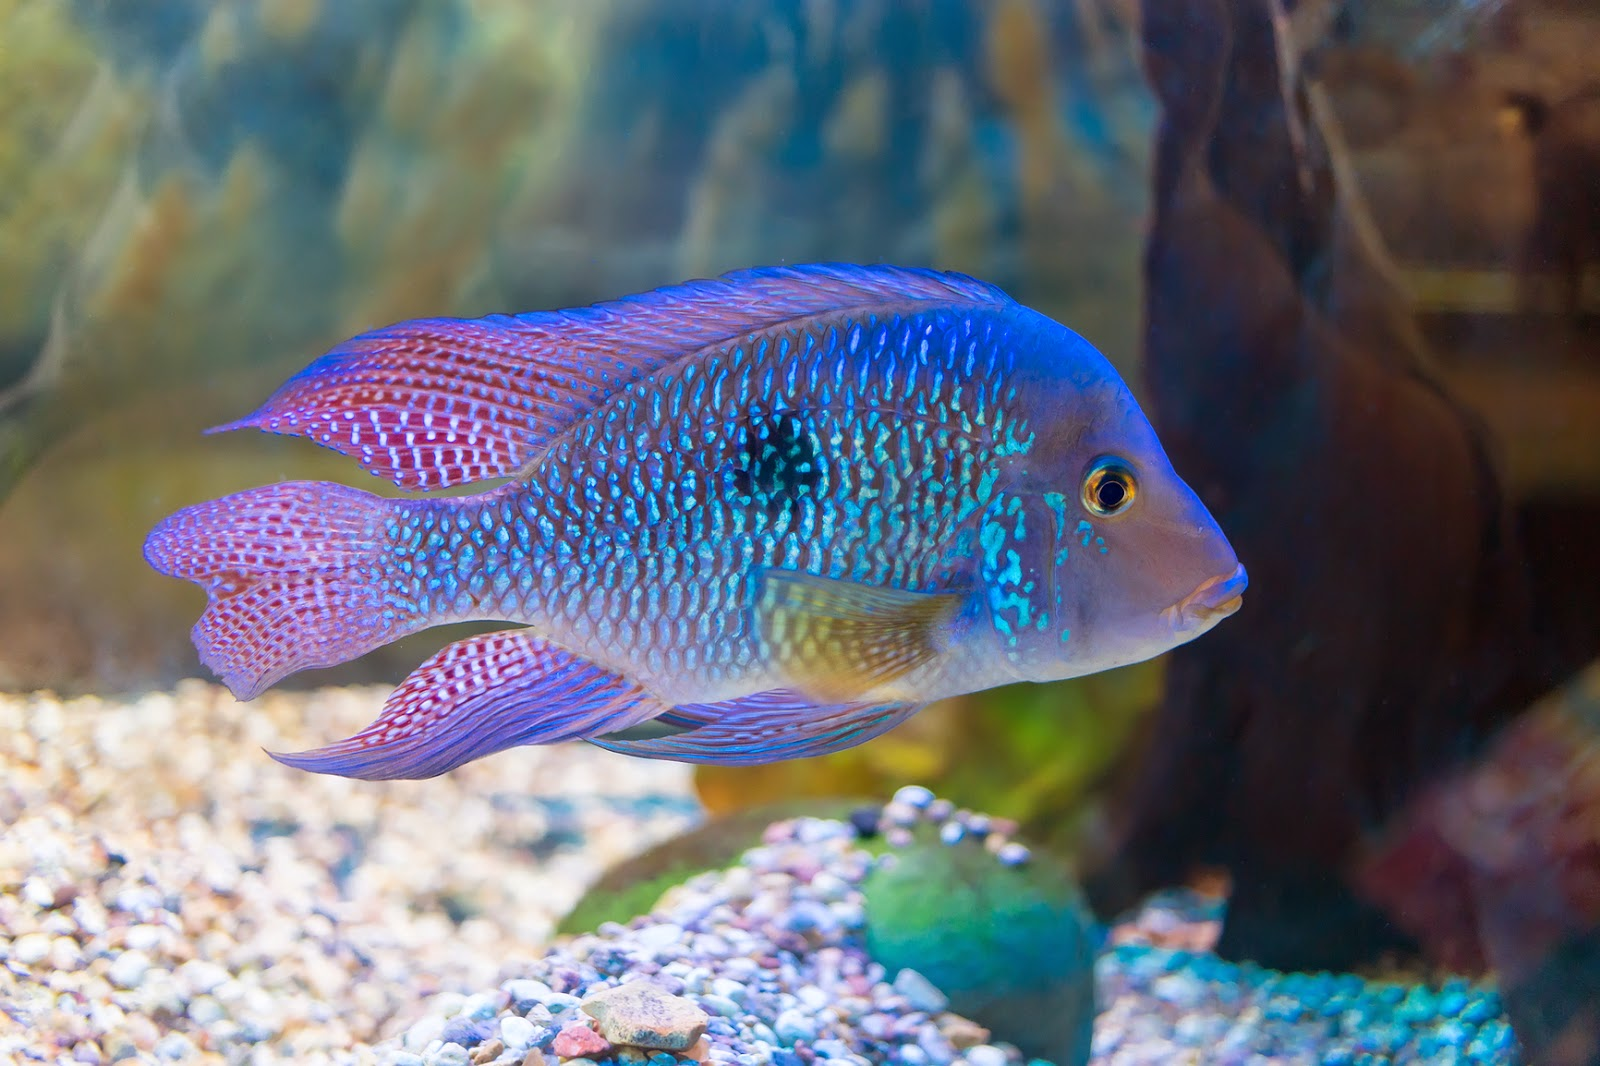 Cichlid fun animals wiki videos pictures stories for Cichlid fish tank